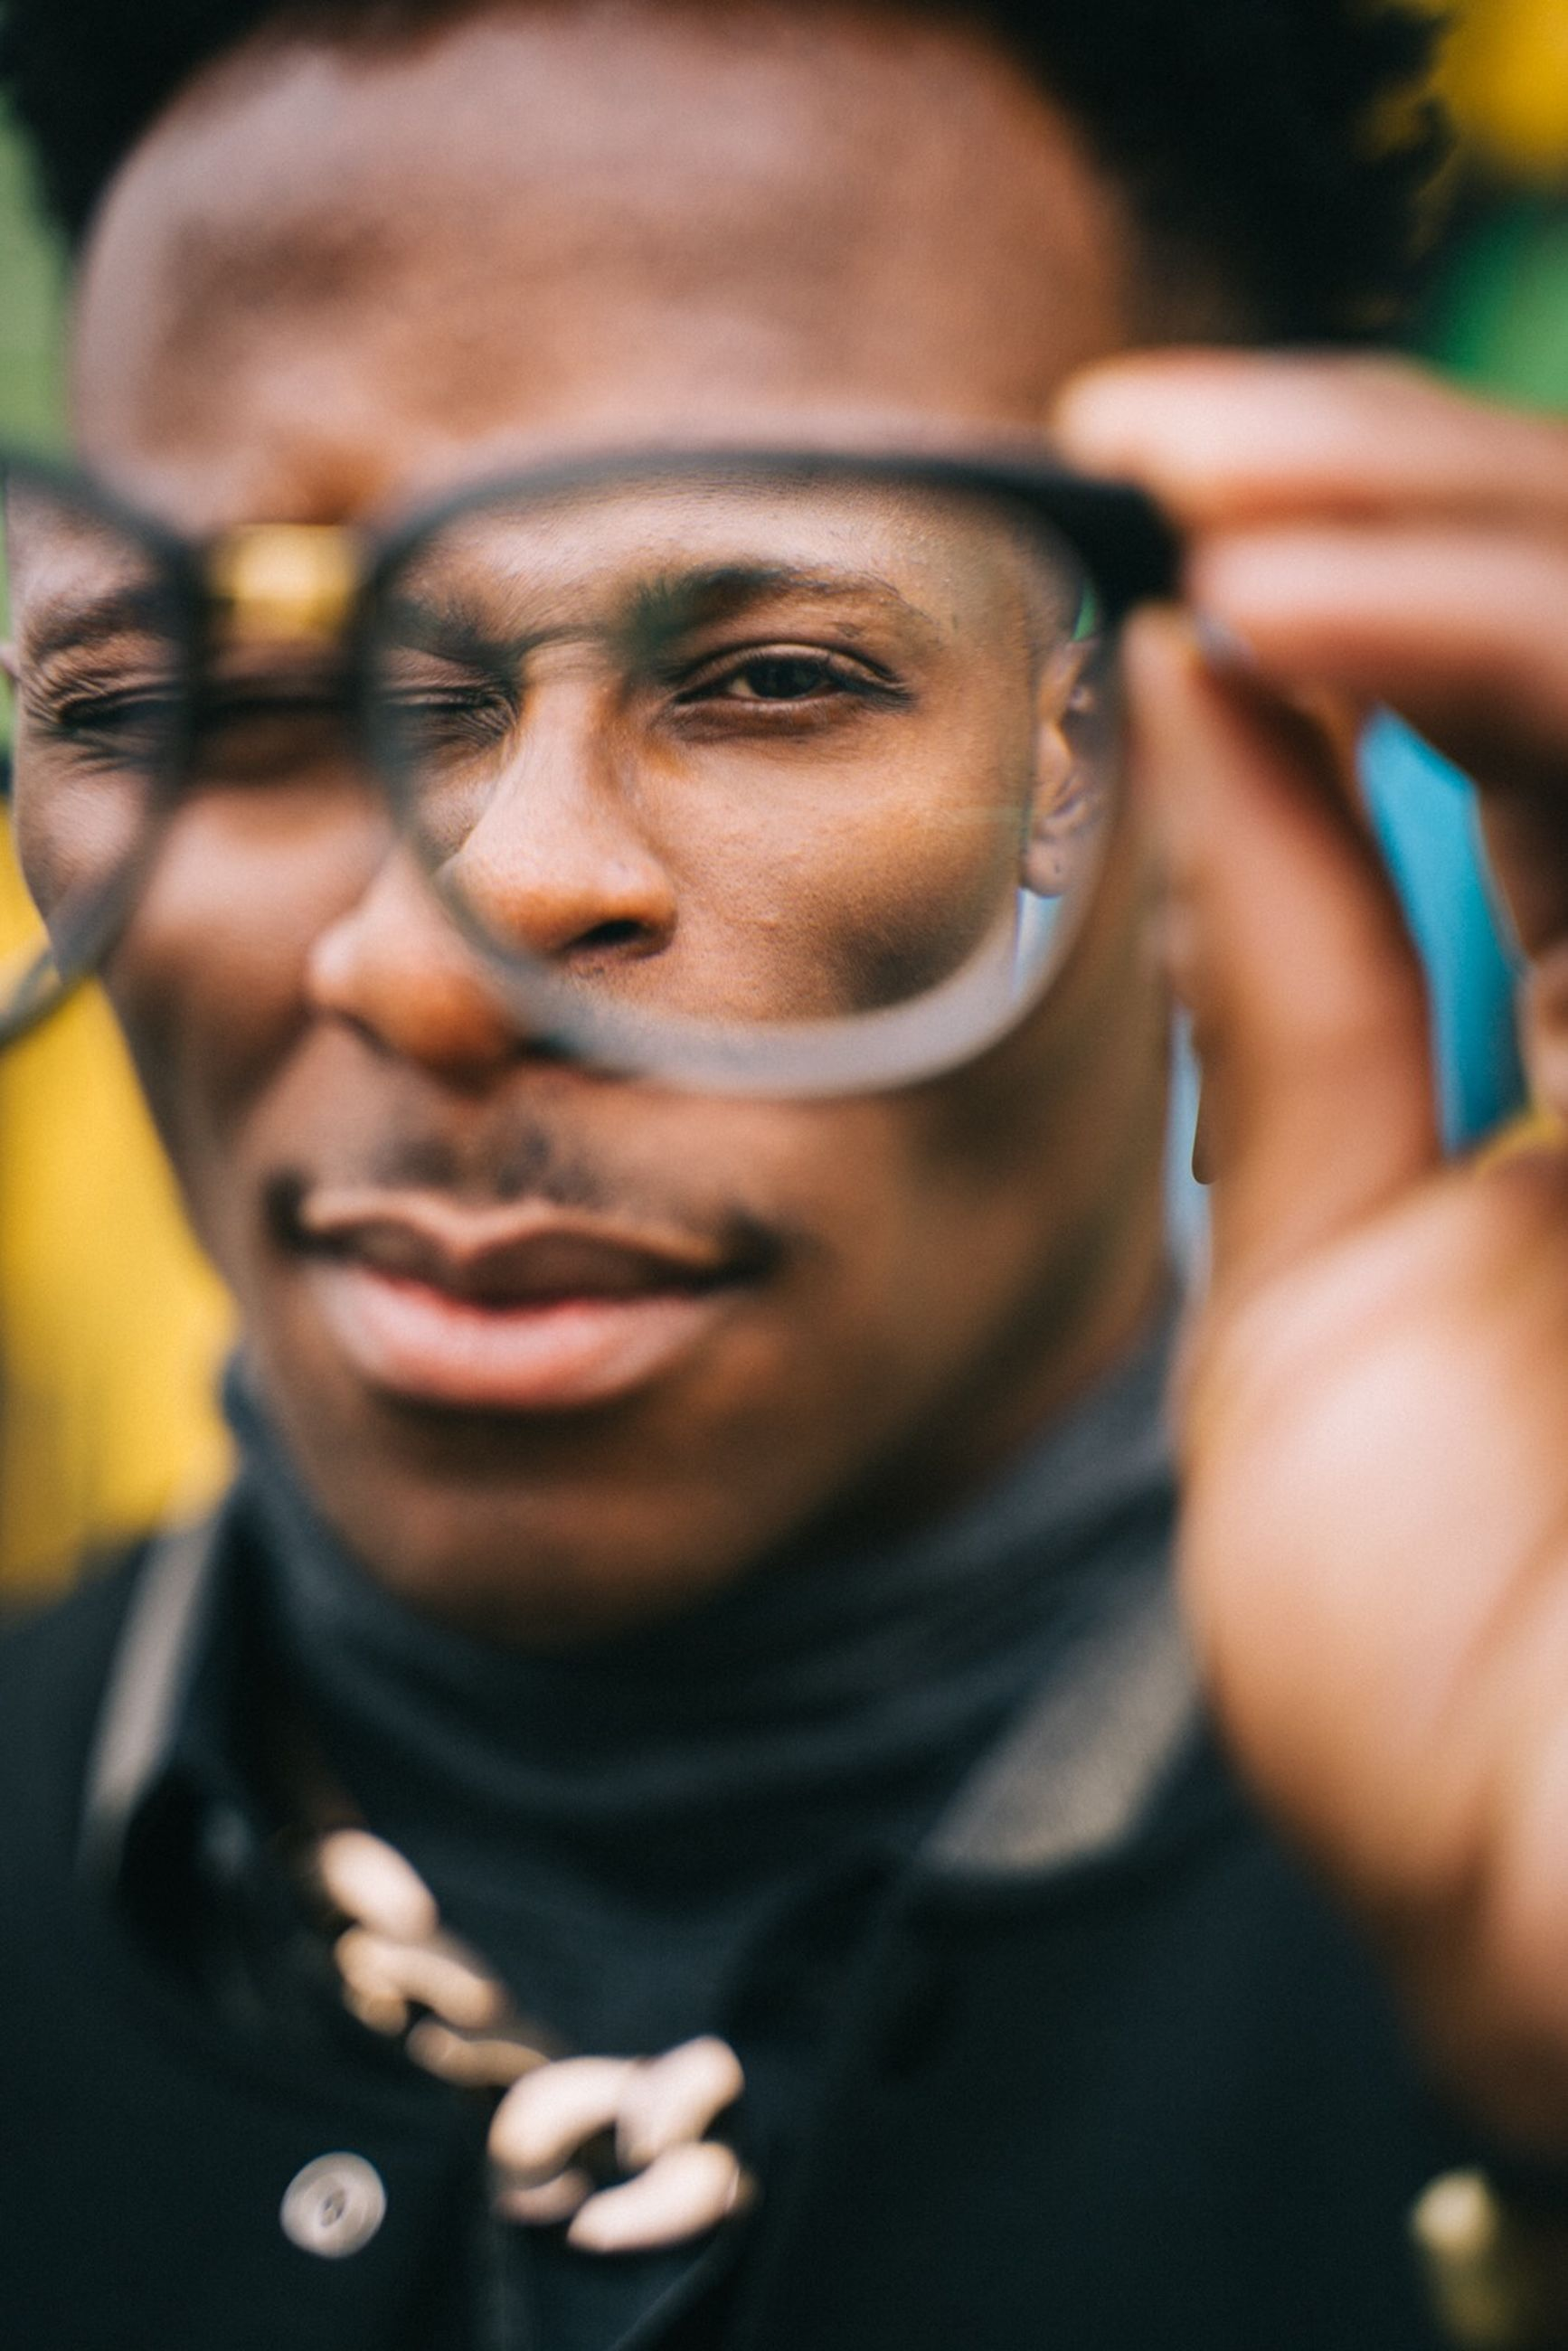 real people, portrait, headshot, one person, front view, lifestyles, adult, selective focus, men, focus on foreground, mid adult, leisure activity, close-up, young adult, looking away, looking, males, casual clothing